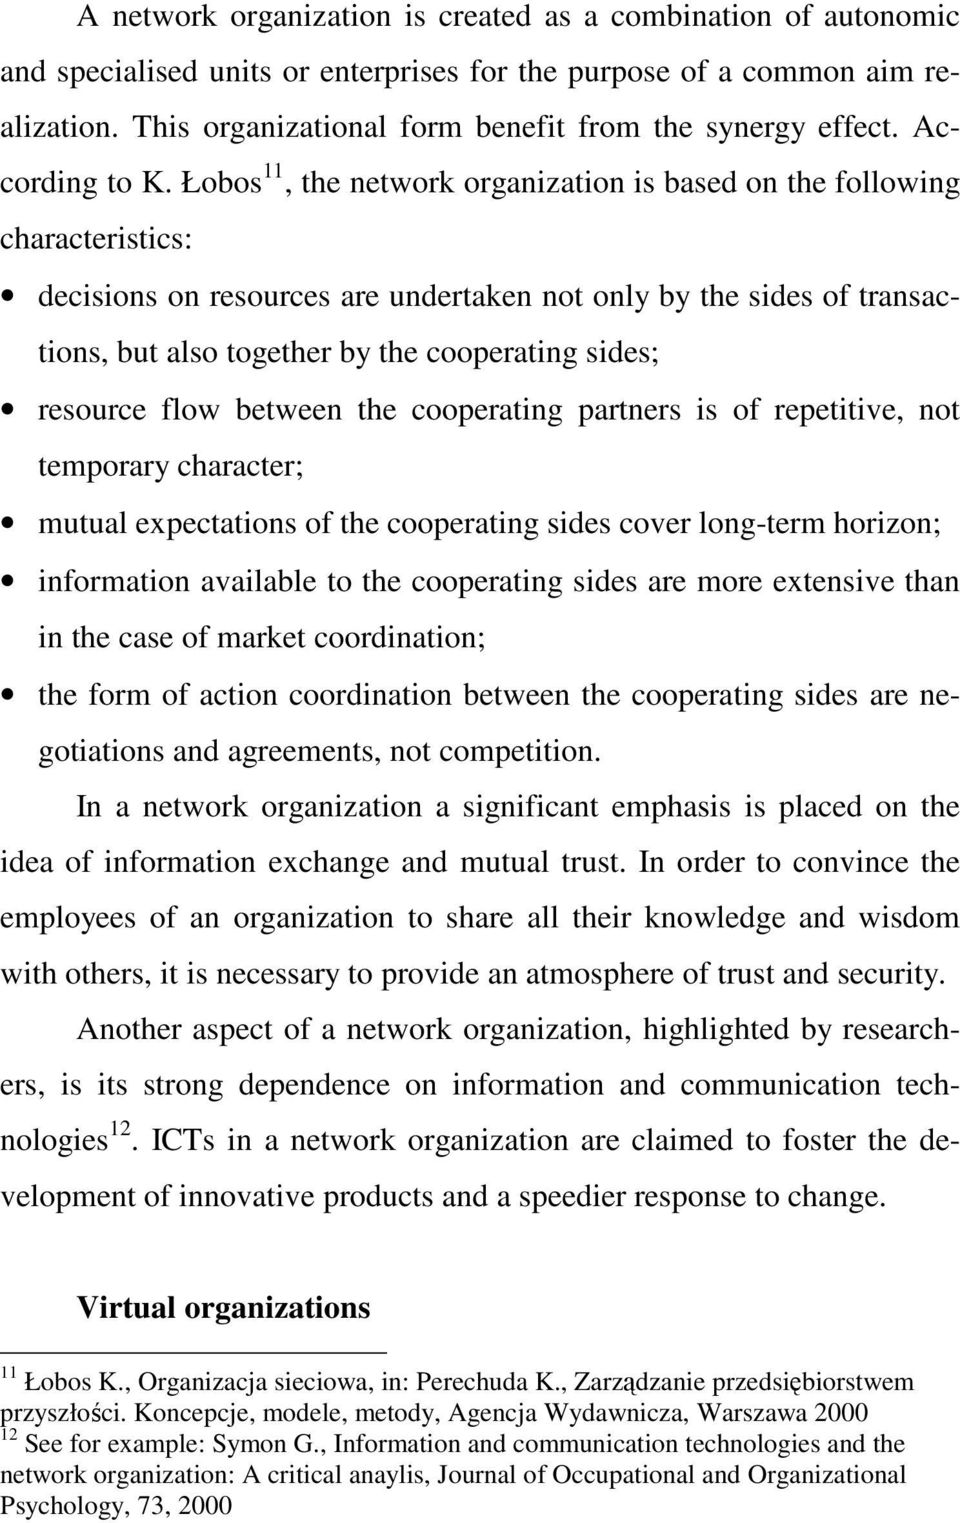 Łobos 11, the network organization is based on the following characteristics: decisions on resources are undertaken not only by the sides of transactions, but also together by the cooperating sides;